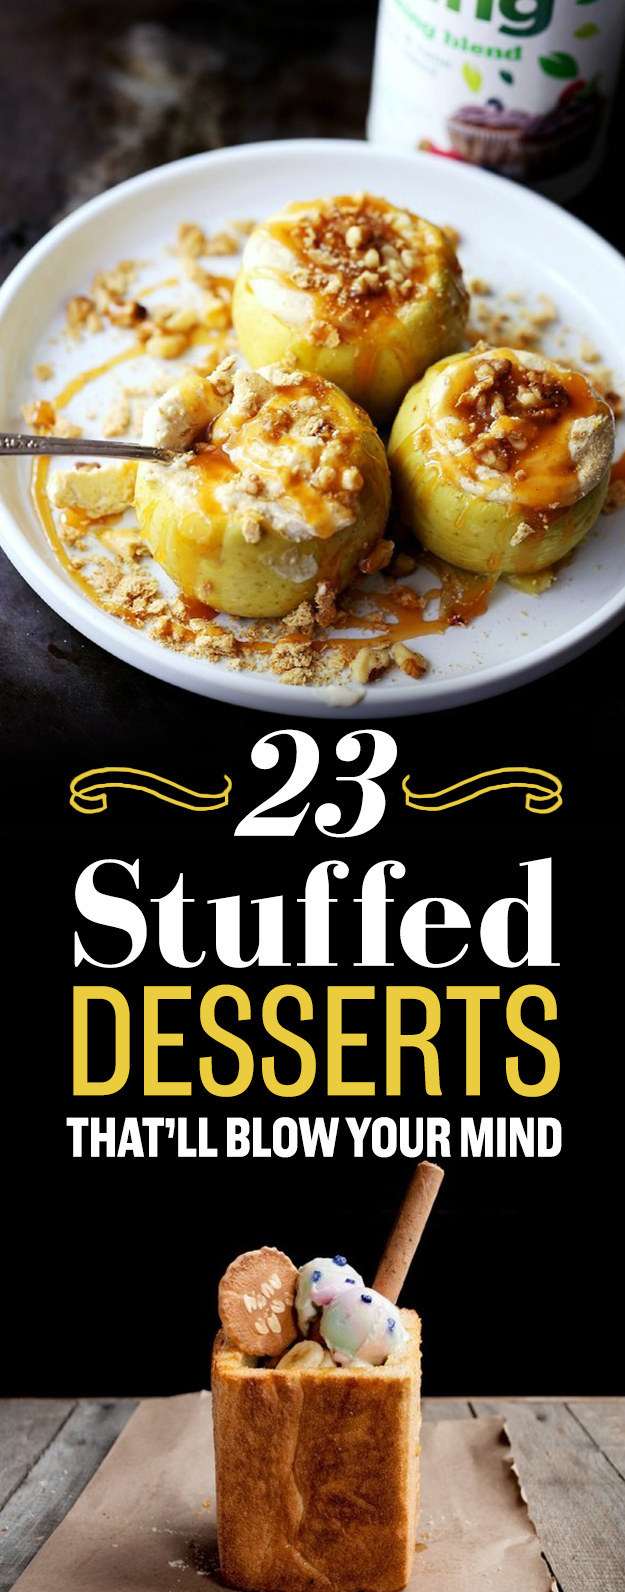 23 Stuffed Desserts That'll Blow Your Mind